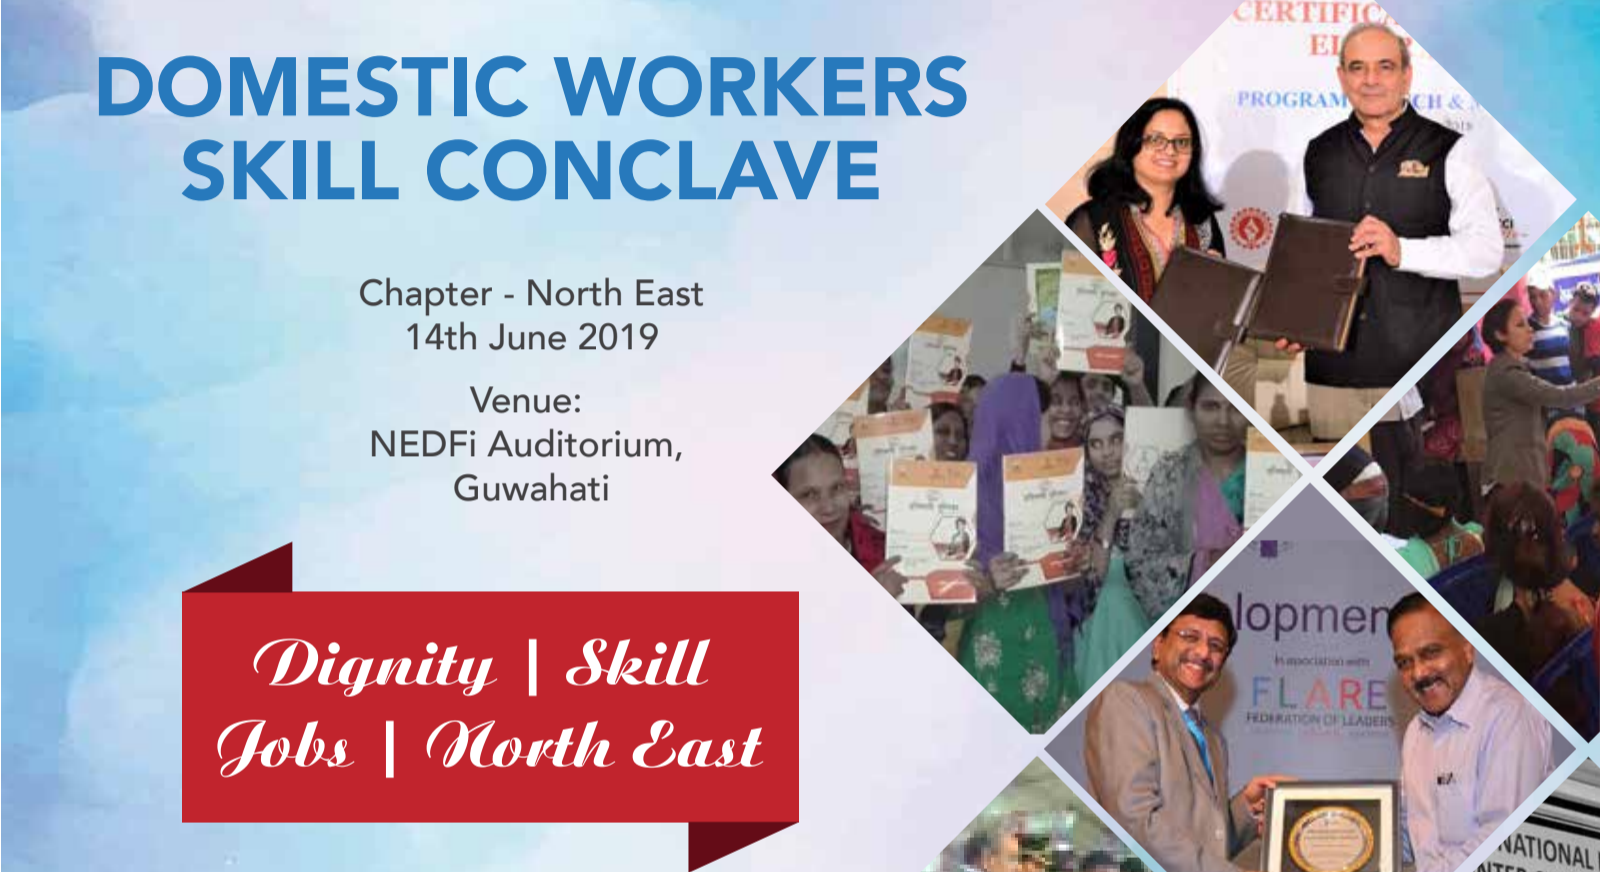 Domestic Workers Skill Conclave at NEDFI Guwahati on June 14th 2019